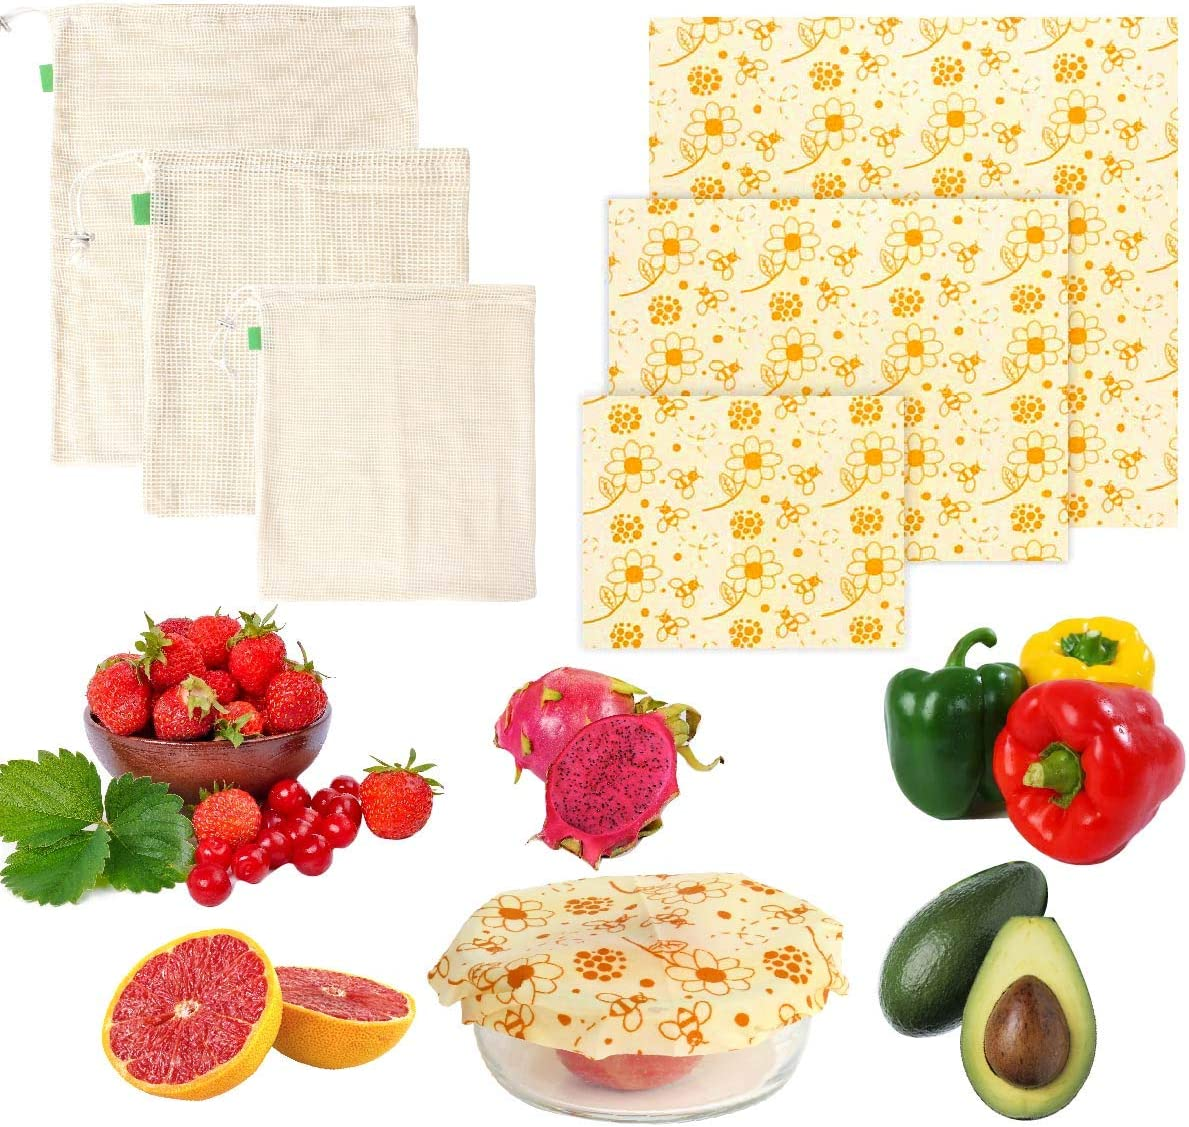 Reusable Beeswax Food Wrap | 3 Pack Bees Wax Wraps With 3 Pack Produce Bags | Eco Friendly Sustainable Wrappers | Beeswax Wrapping Paper |Zero Waste Food Storage| Alternative To Plastic Bag